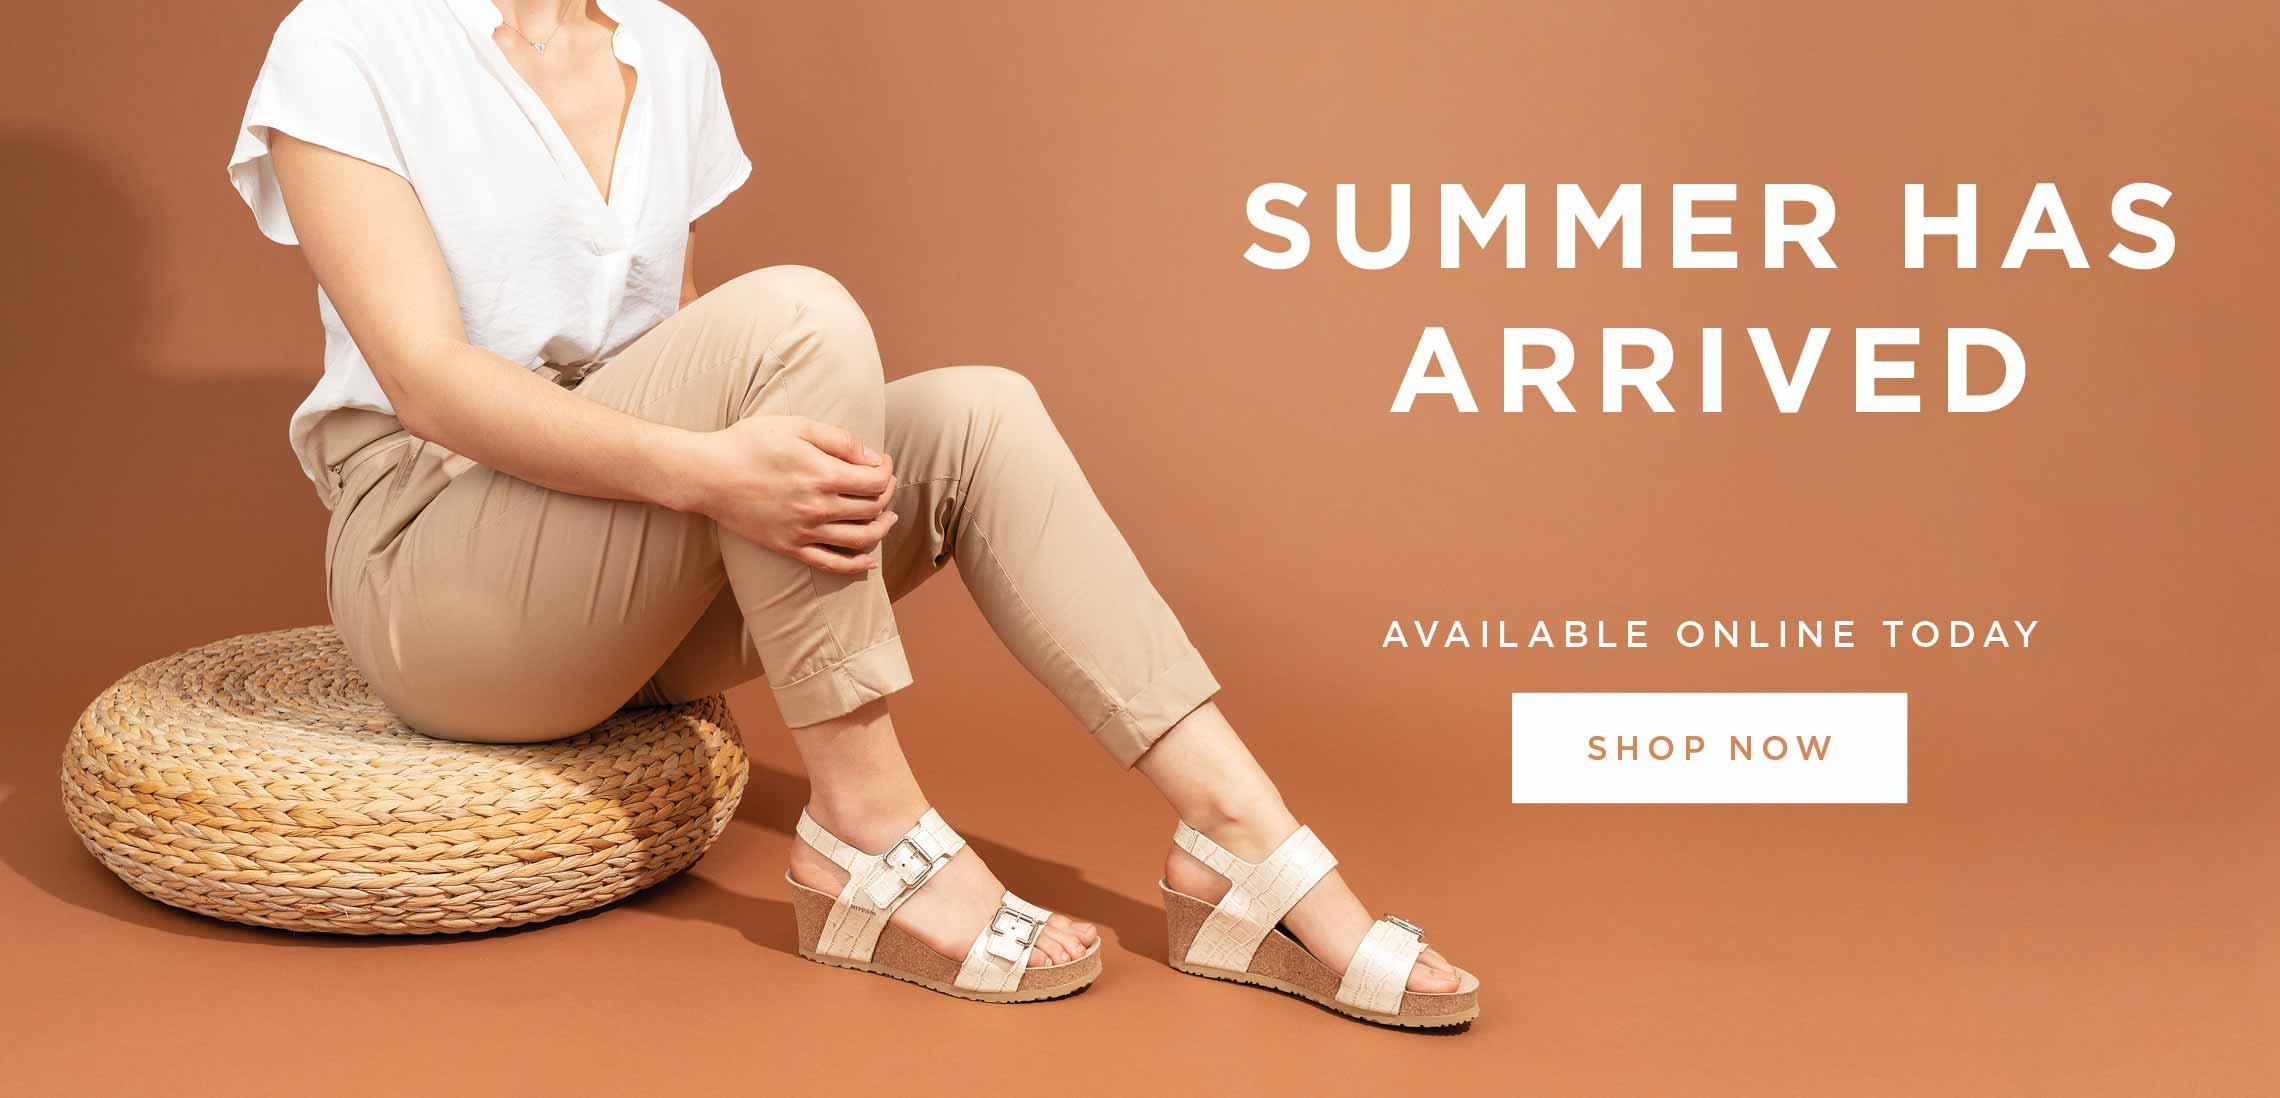 The World's Most Luxurious Walking Shoes - Shop Now